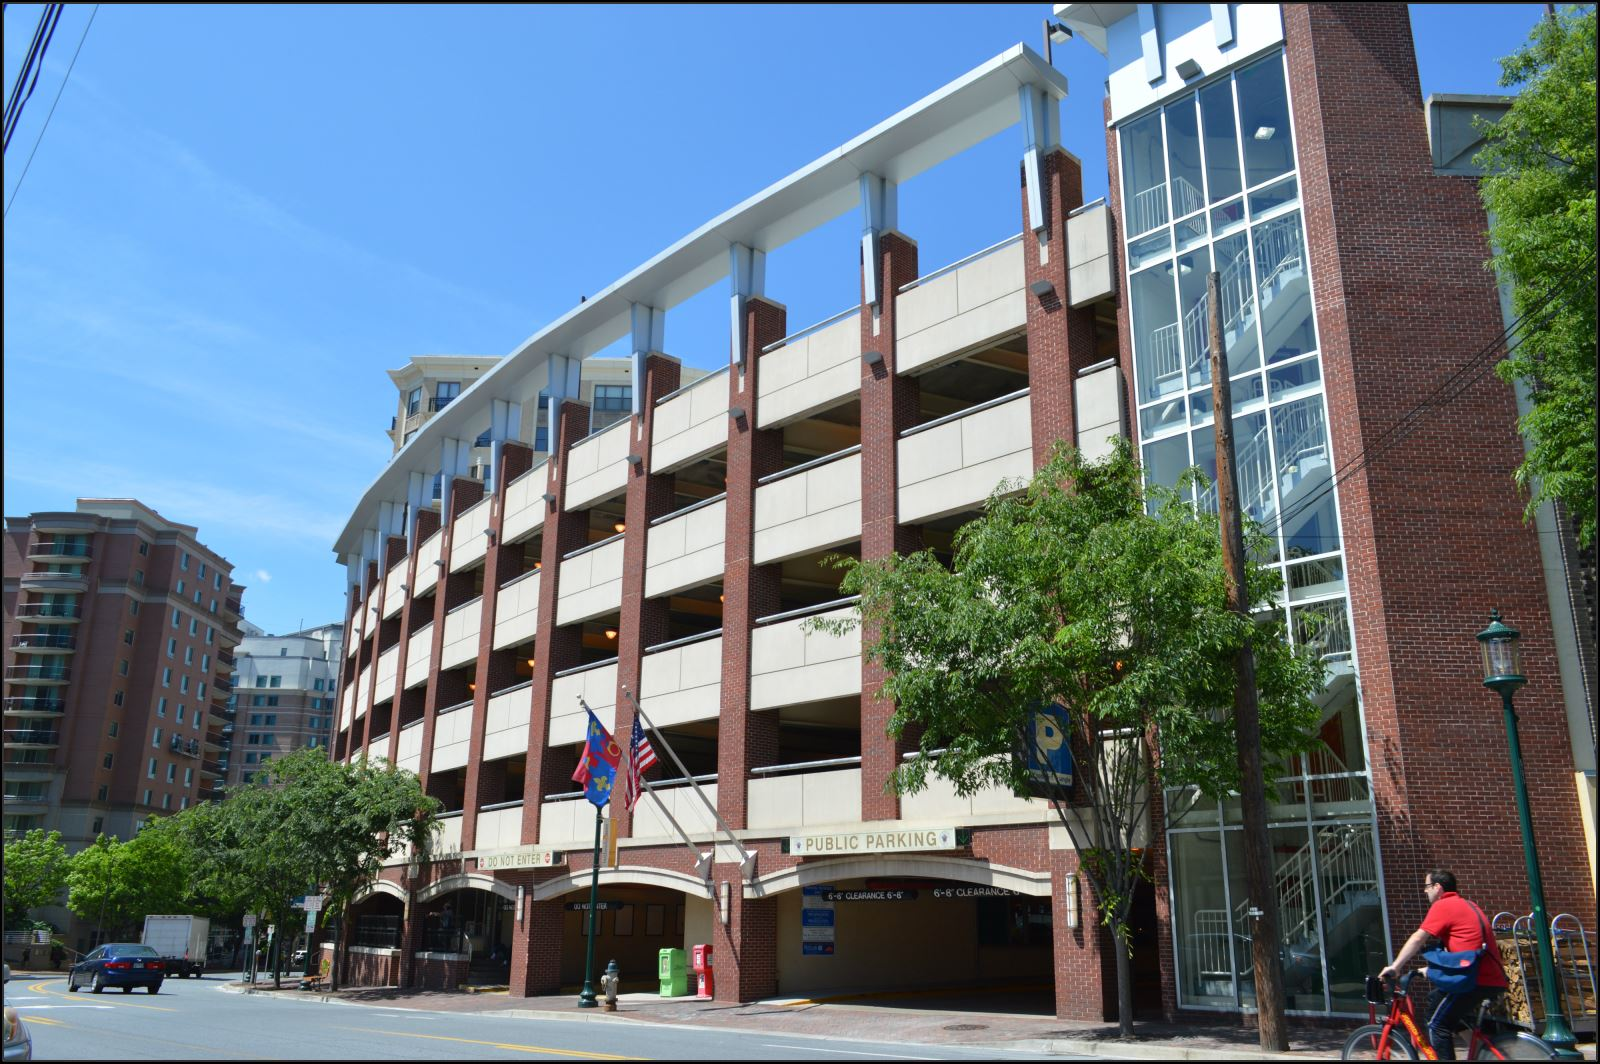 Parking Rates About To Climb In Downtown Bethesda